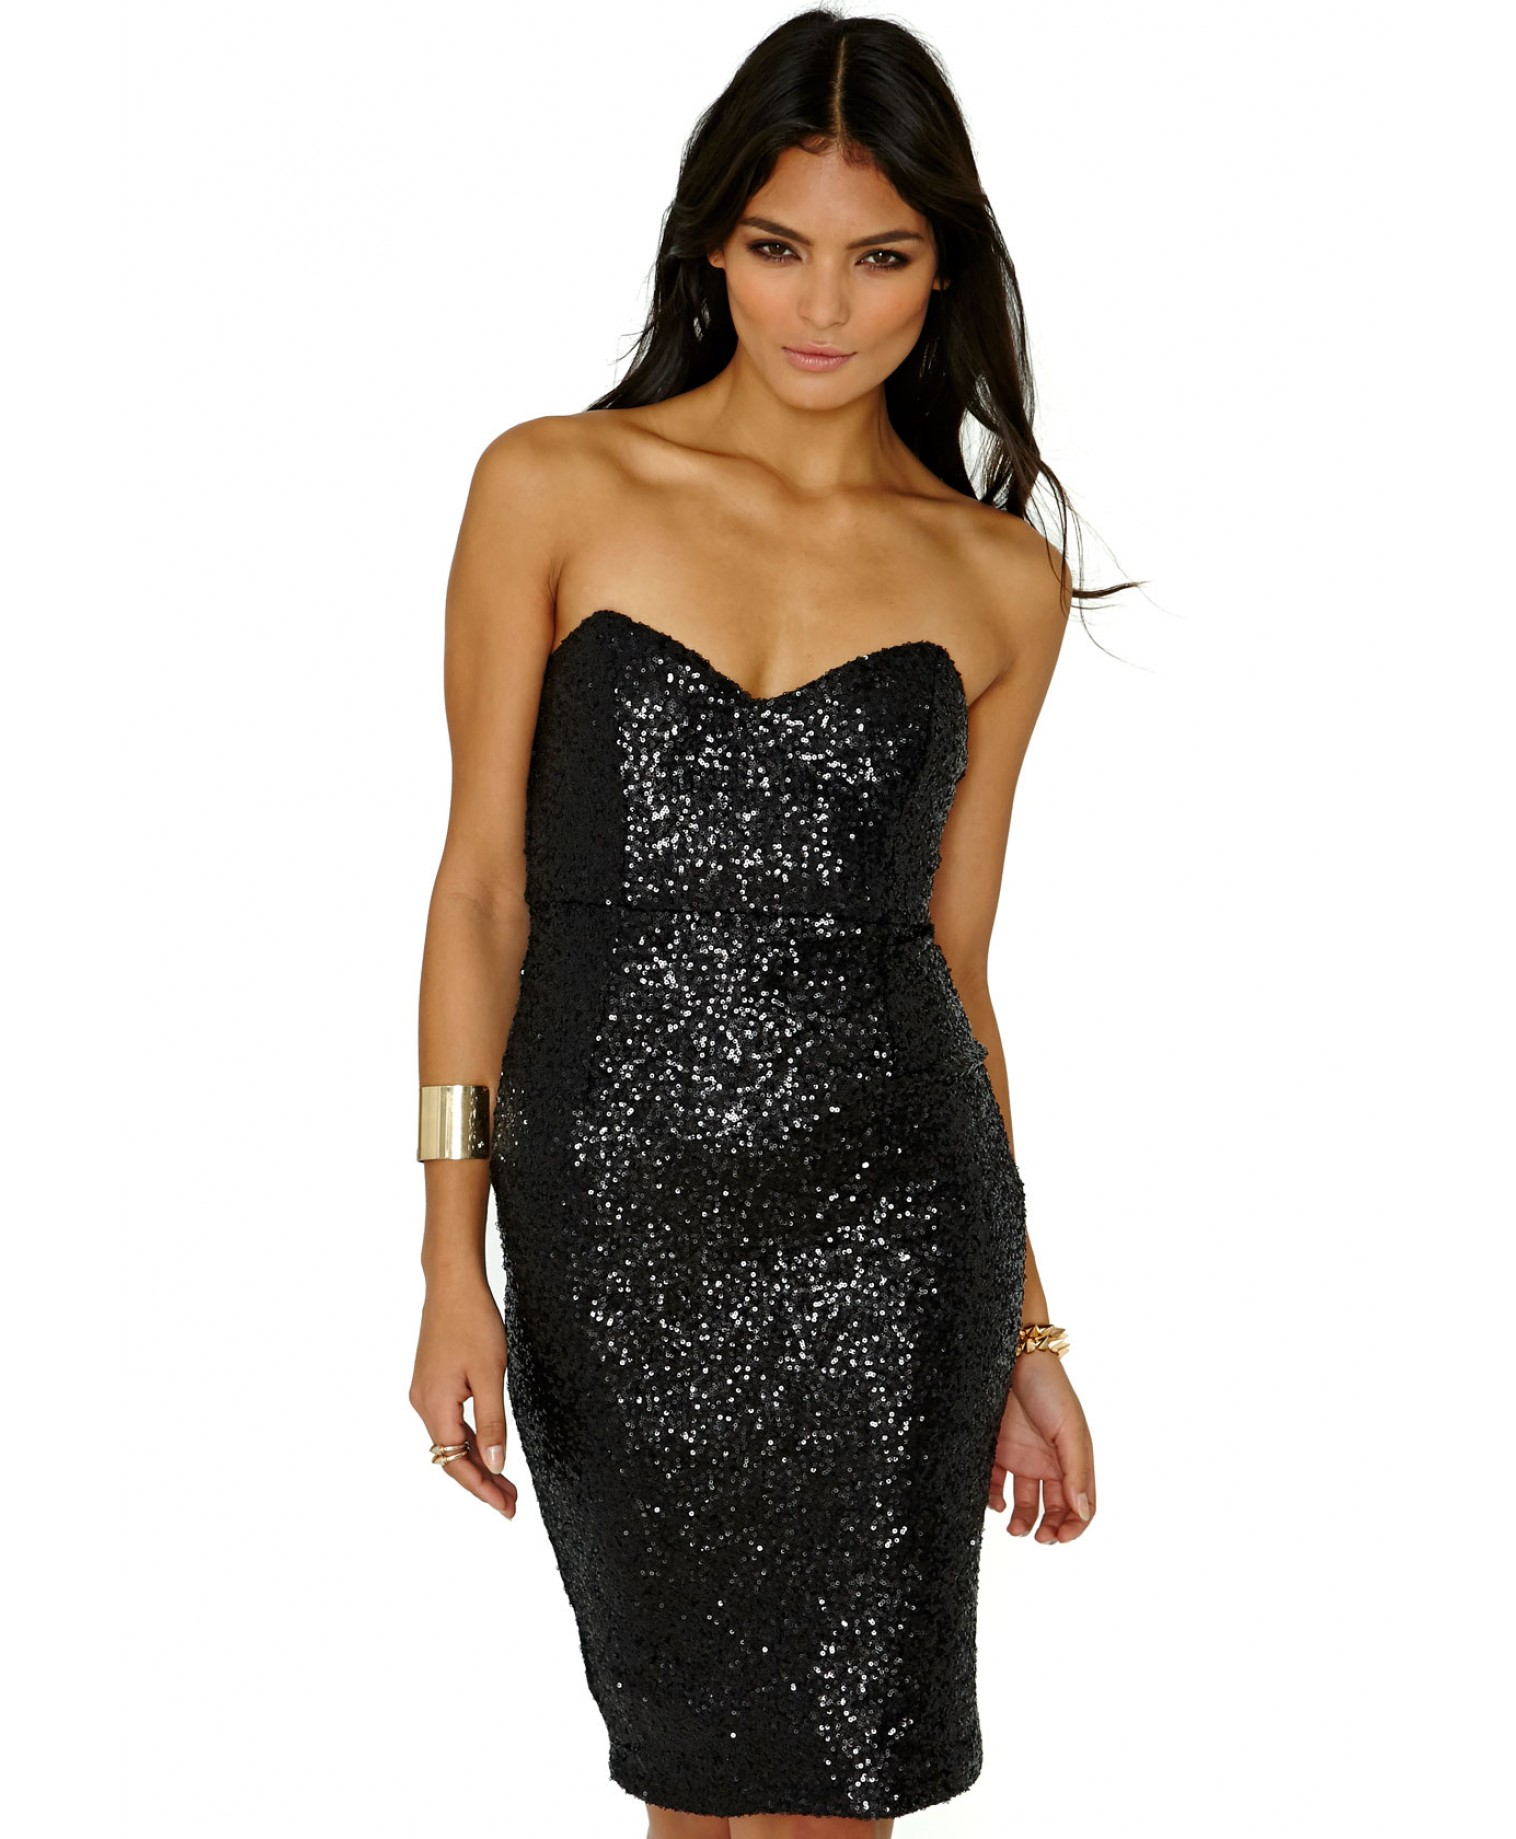 Missguided Bubla Strapless Sequin Midi Dress in Black in Black | Lyst